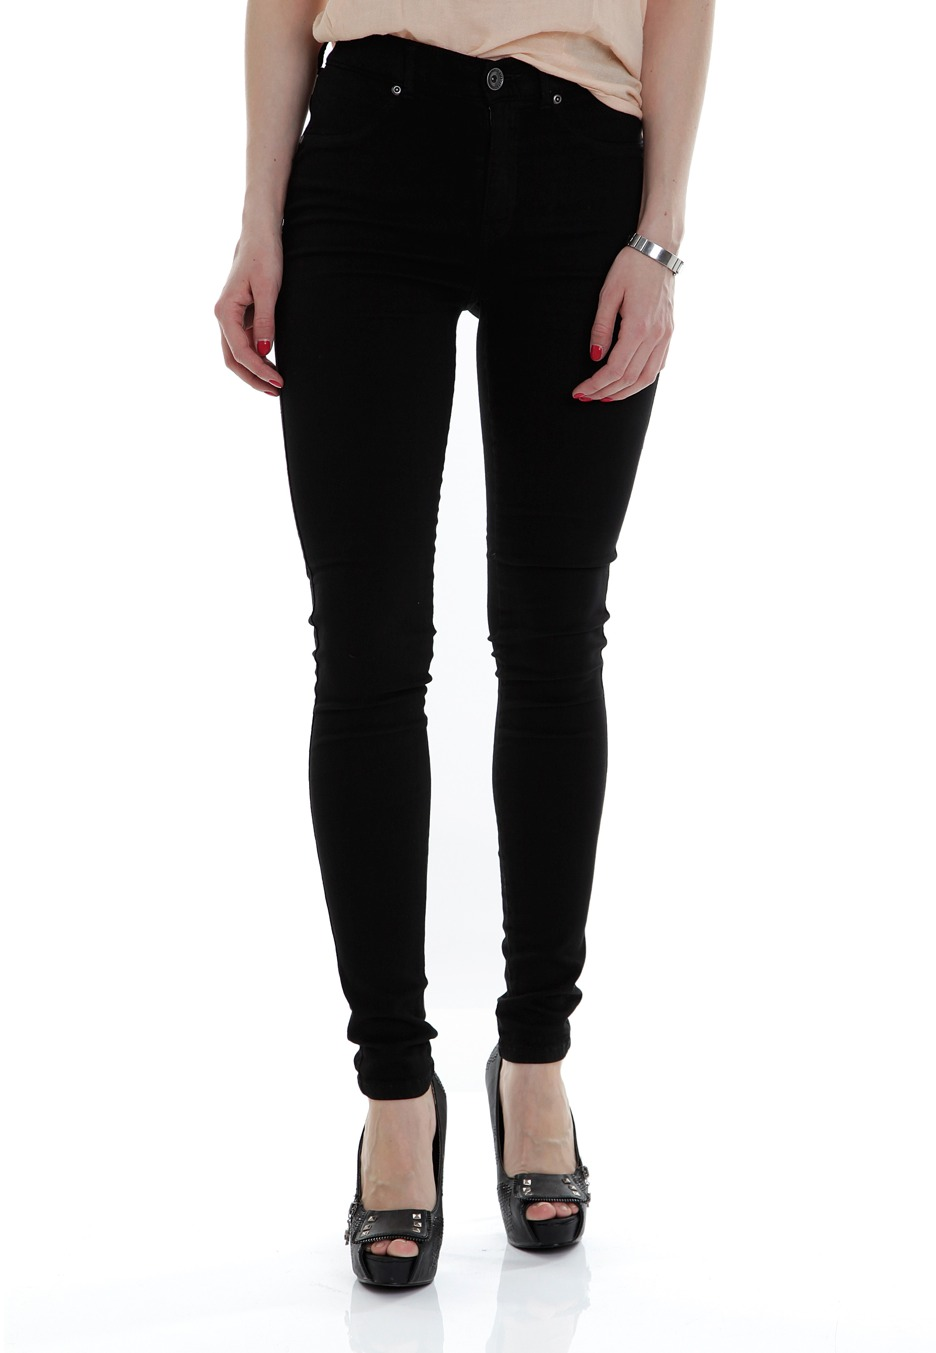 Pull on jeggings are the perfect combination of style and comfort. Shop the Matalan collection of black, blue & grey jeggings, in a variety of washes.